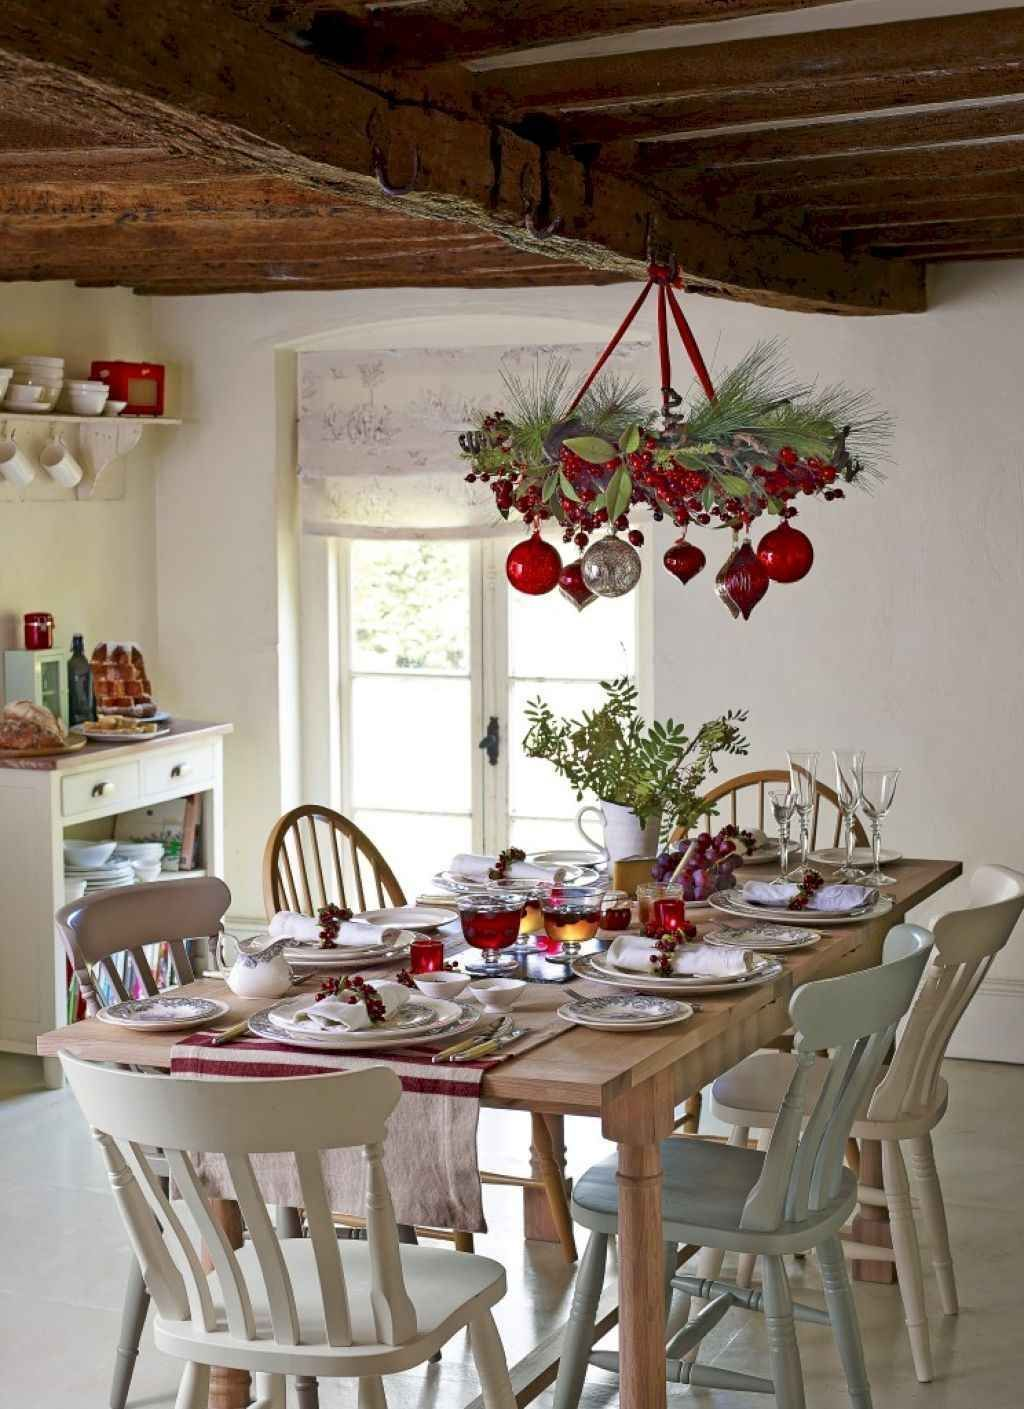 34 Awesome Winter Dining Table Decor Ideas Christmas Kitchen Decor Christmas Dining Room Decor Christmas Dining Table Decor